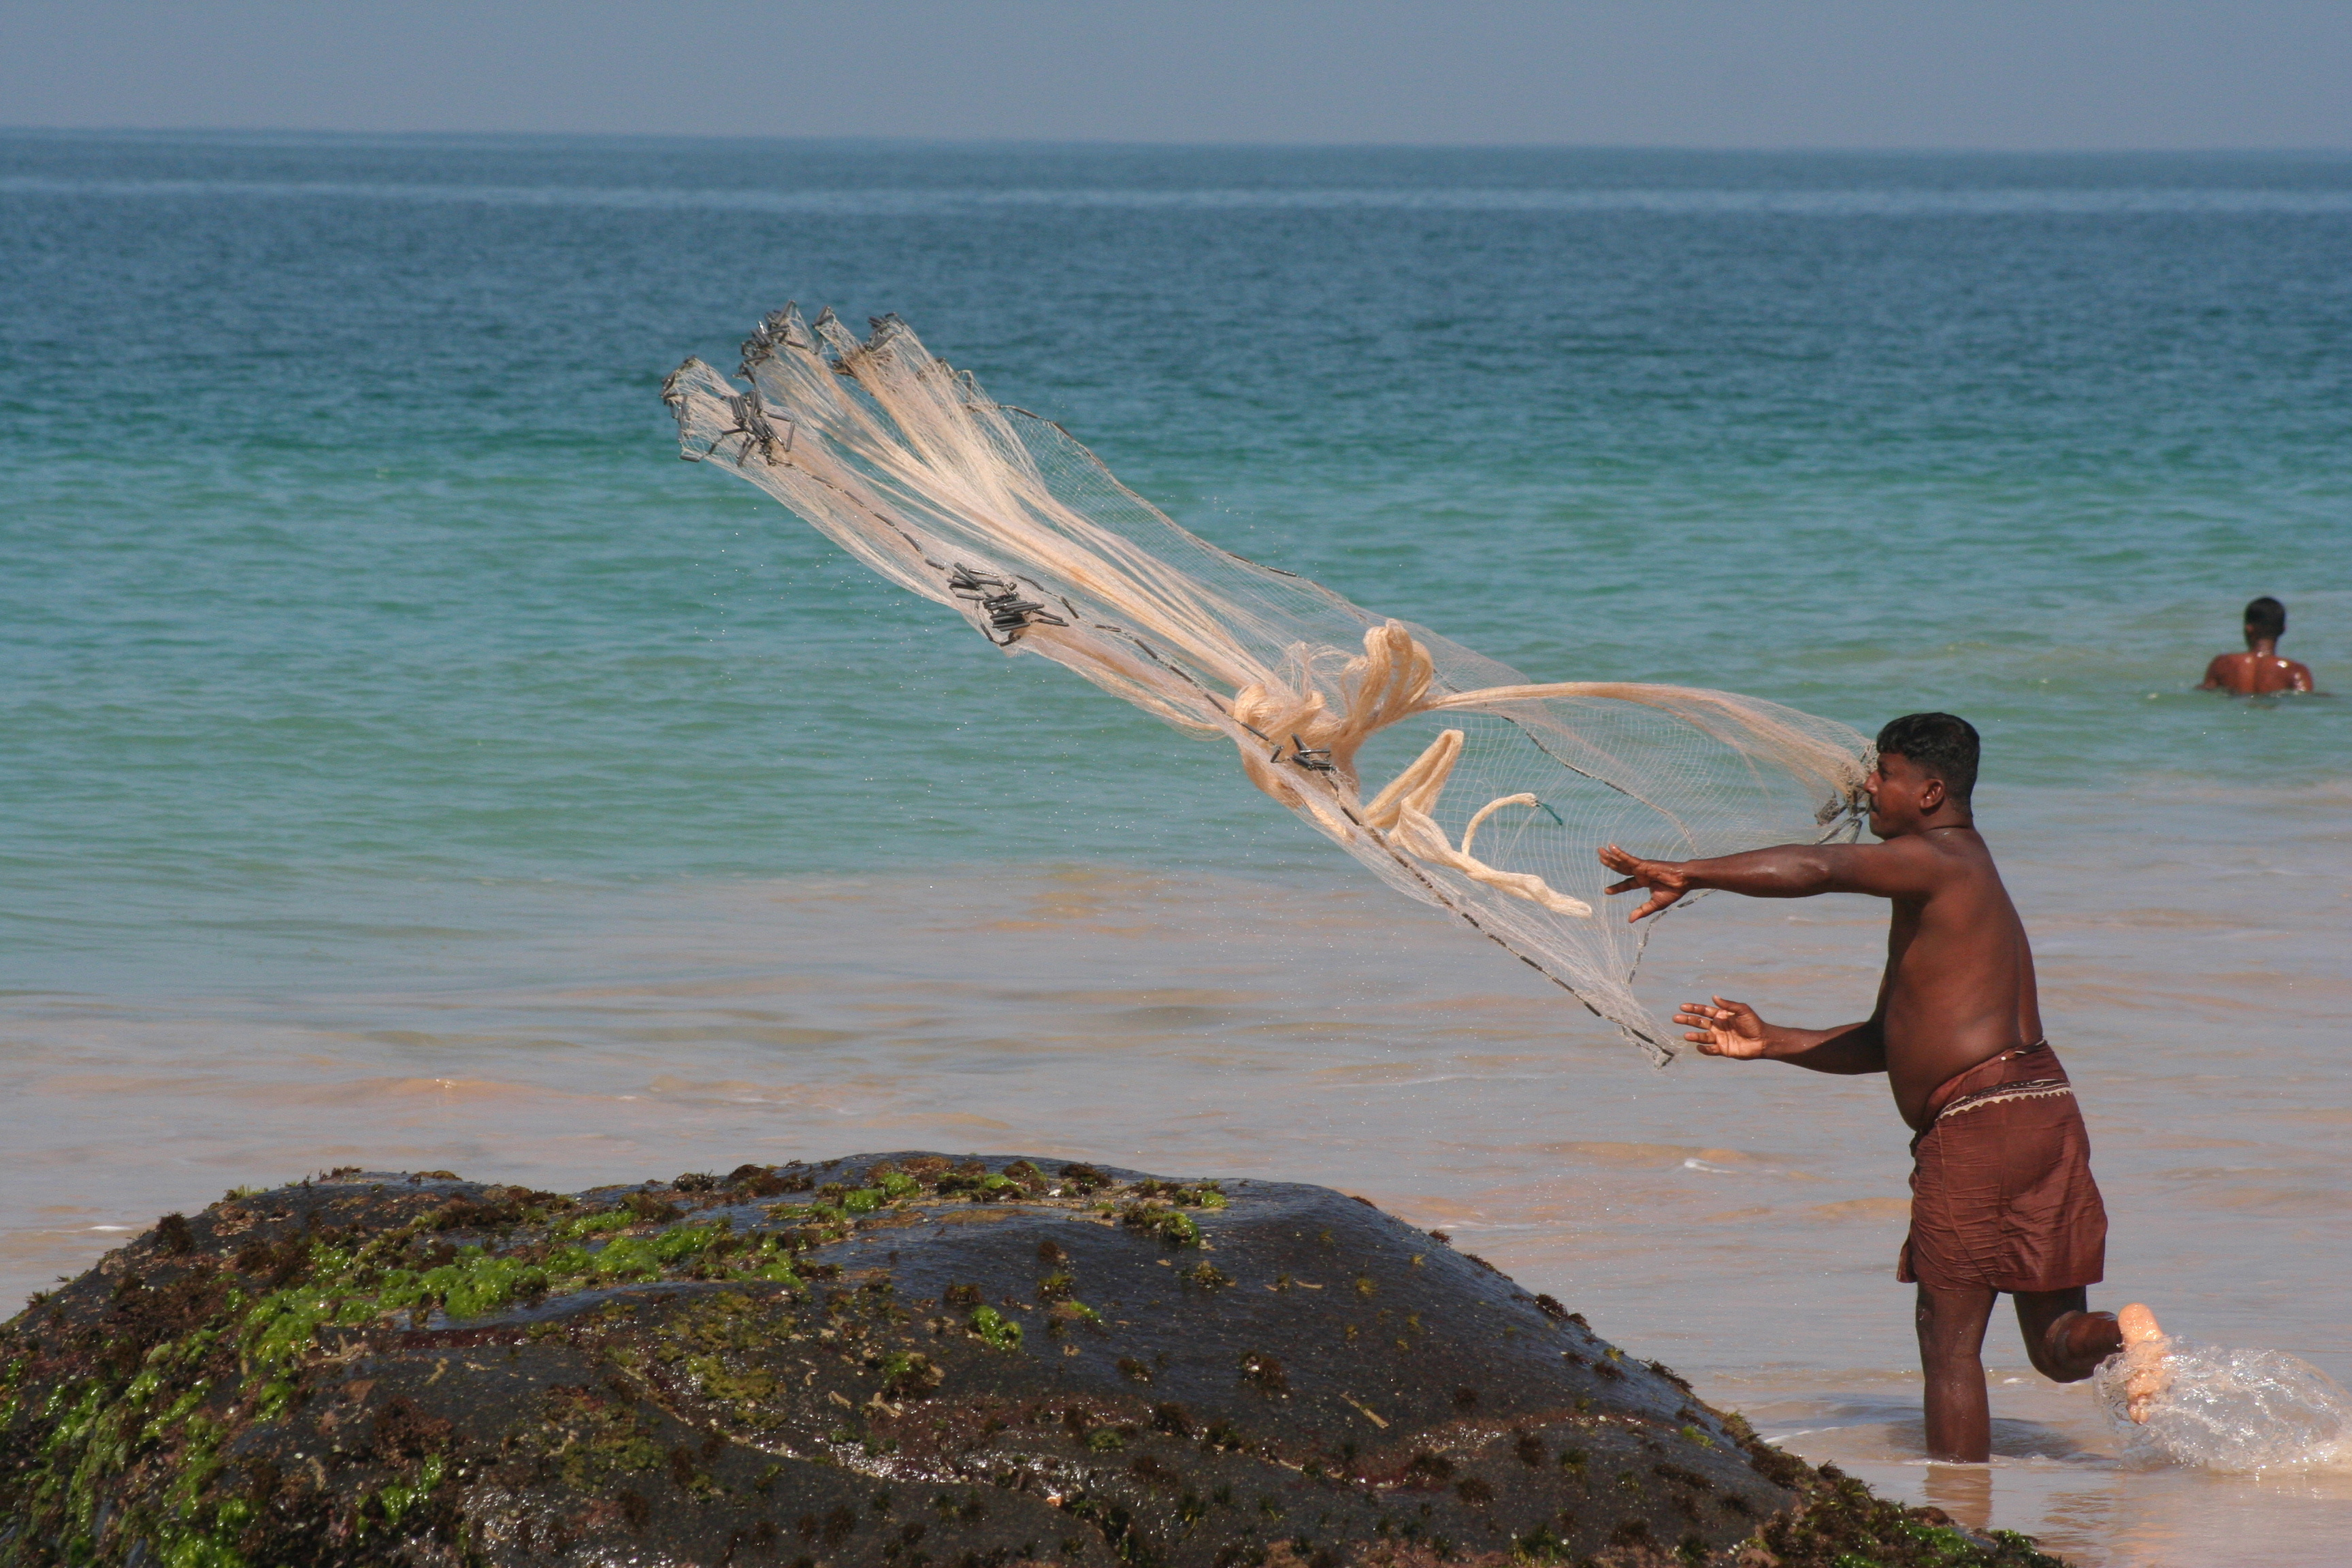 Sri Lanka fisherman at the beach. Enjoy good fresh fish and exquisite cuisine at your Sri Lanka vaca